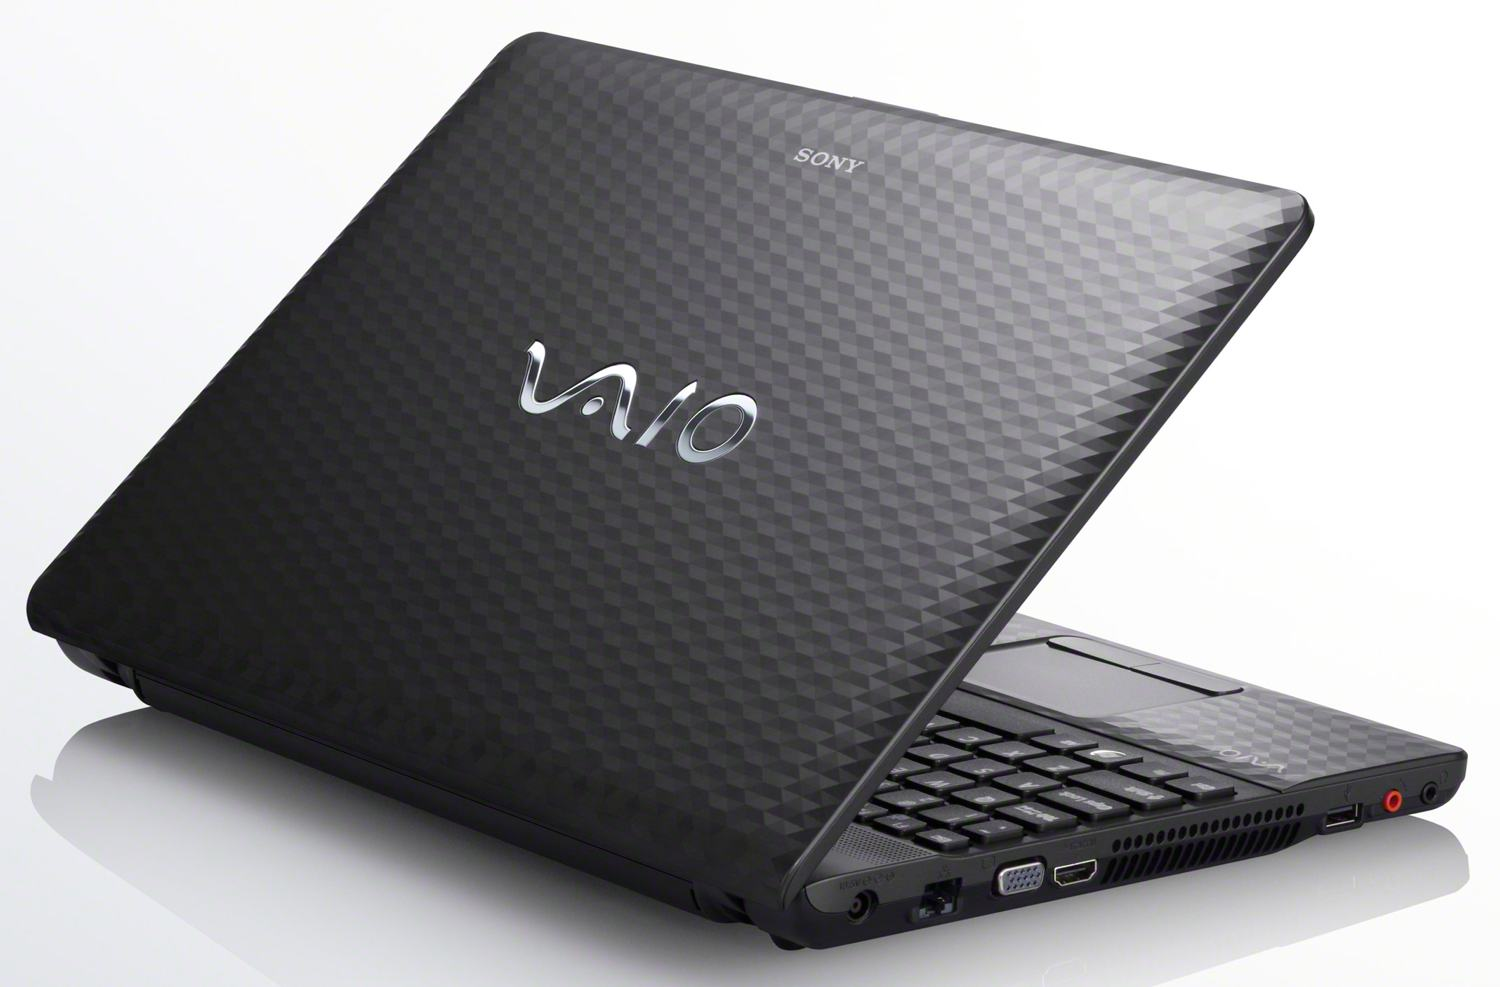 http://images.amazon.com/images/G/01/electronics/sony/sony-11q4-vaio-el-black-coveropen-lg.jpg